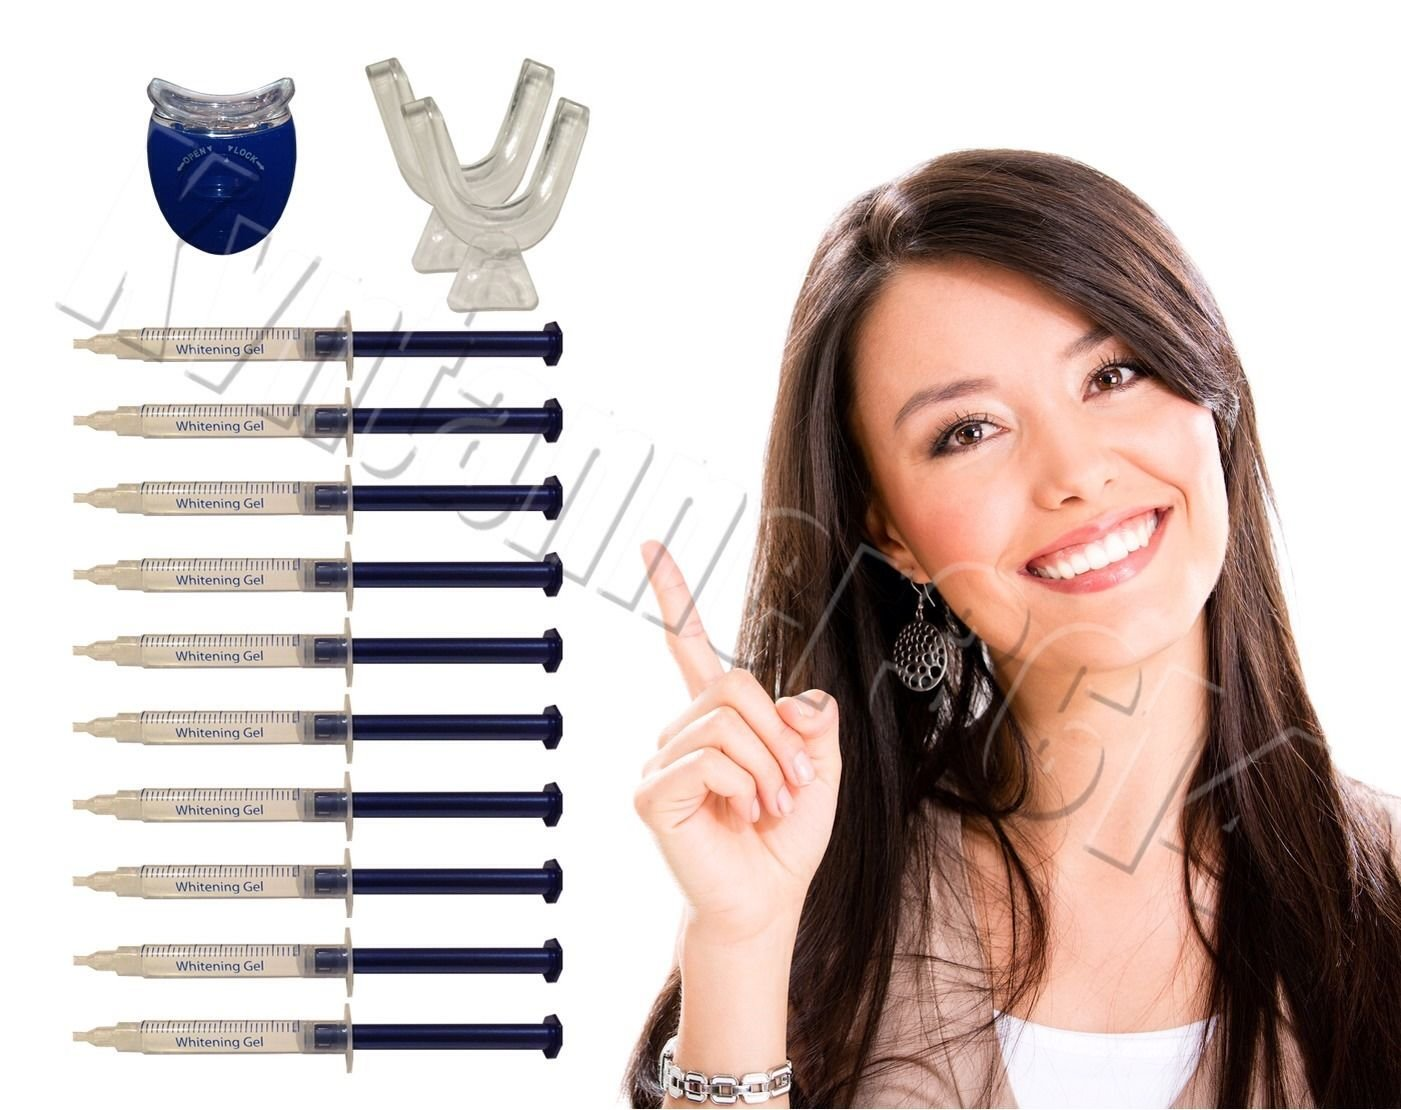 Extra Strength Teeth Whitening Kit; 12 Syringes of 44% Dentist Quality Tooth Whitener Gel and 2 Thermoforming Mouth Trays